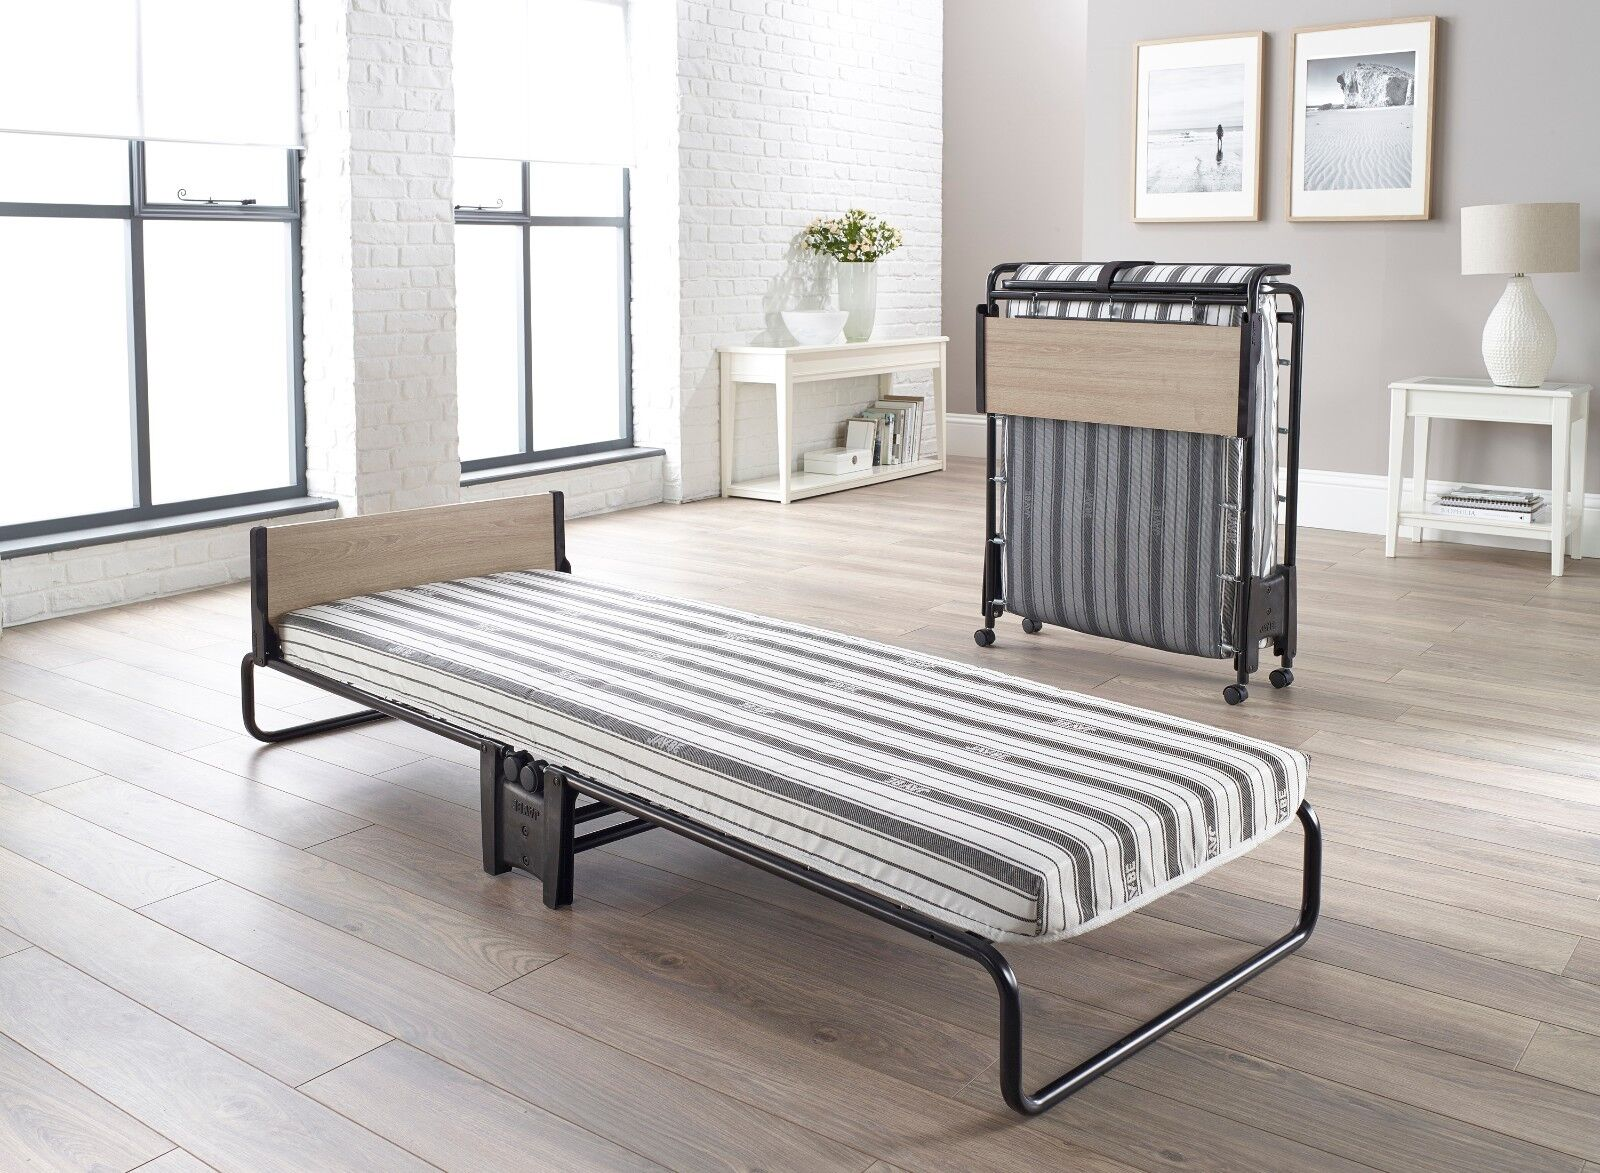 - Jay Be Guest Revolution Small Single Folding Bed With Airflow